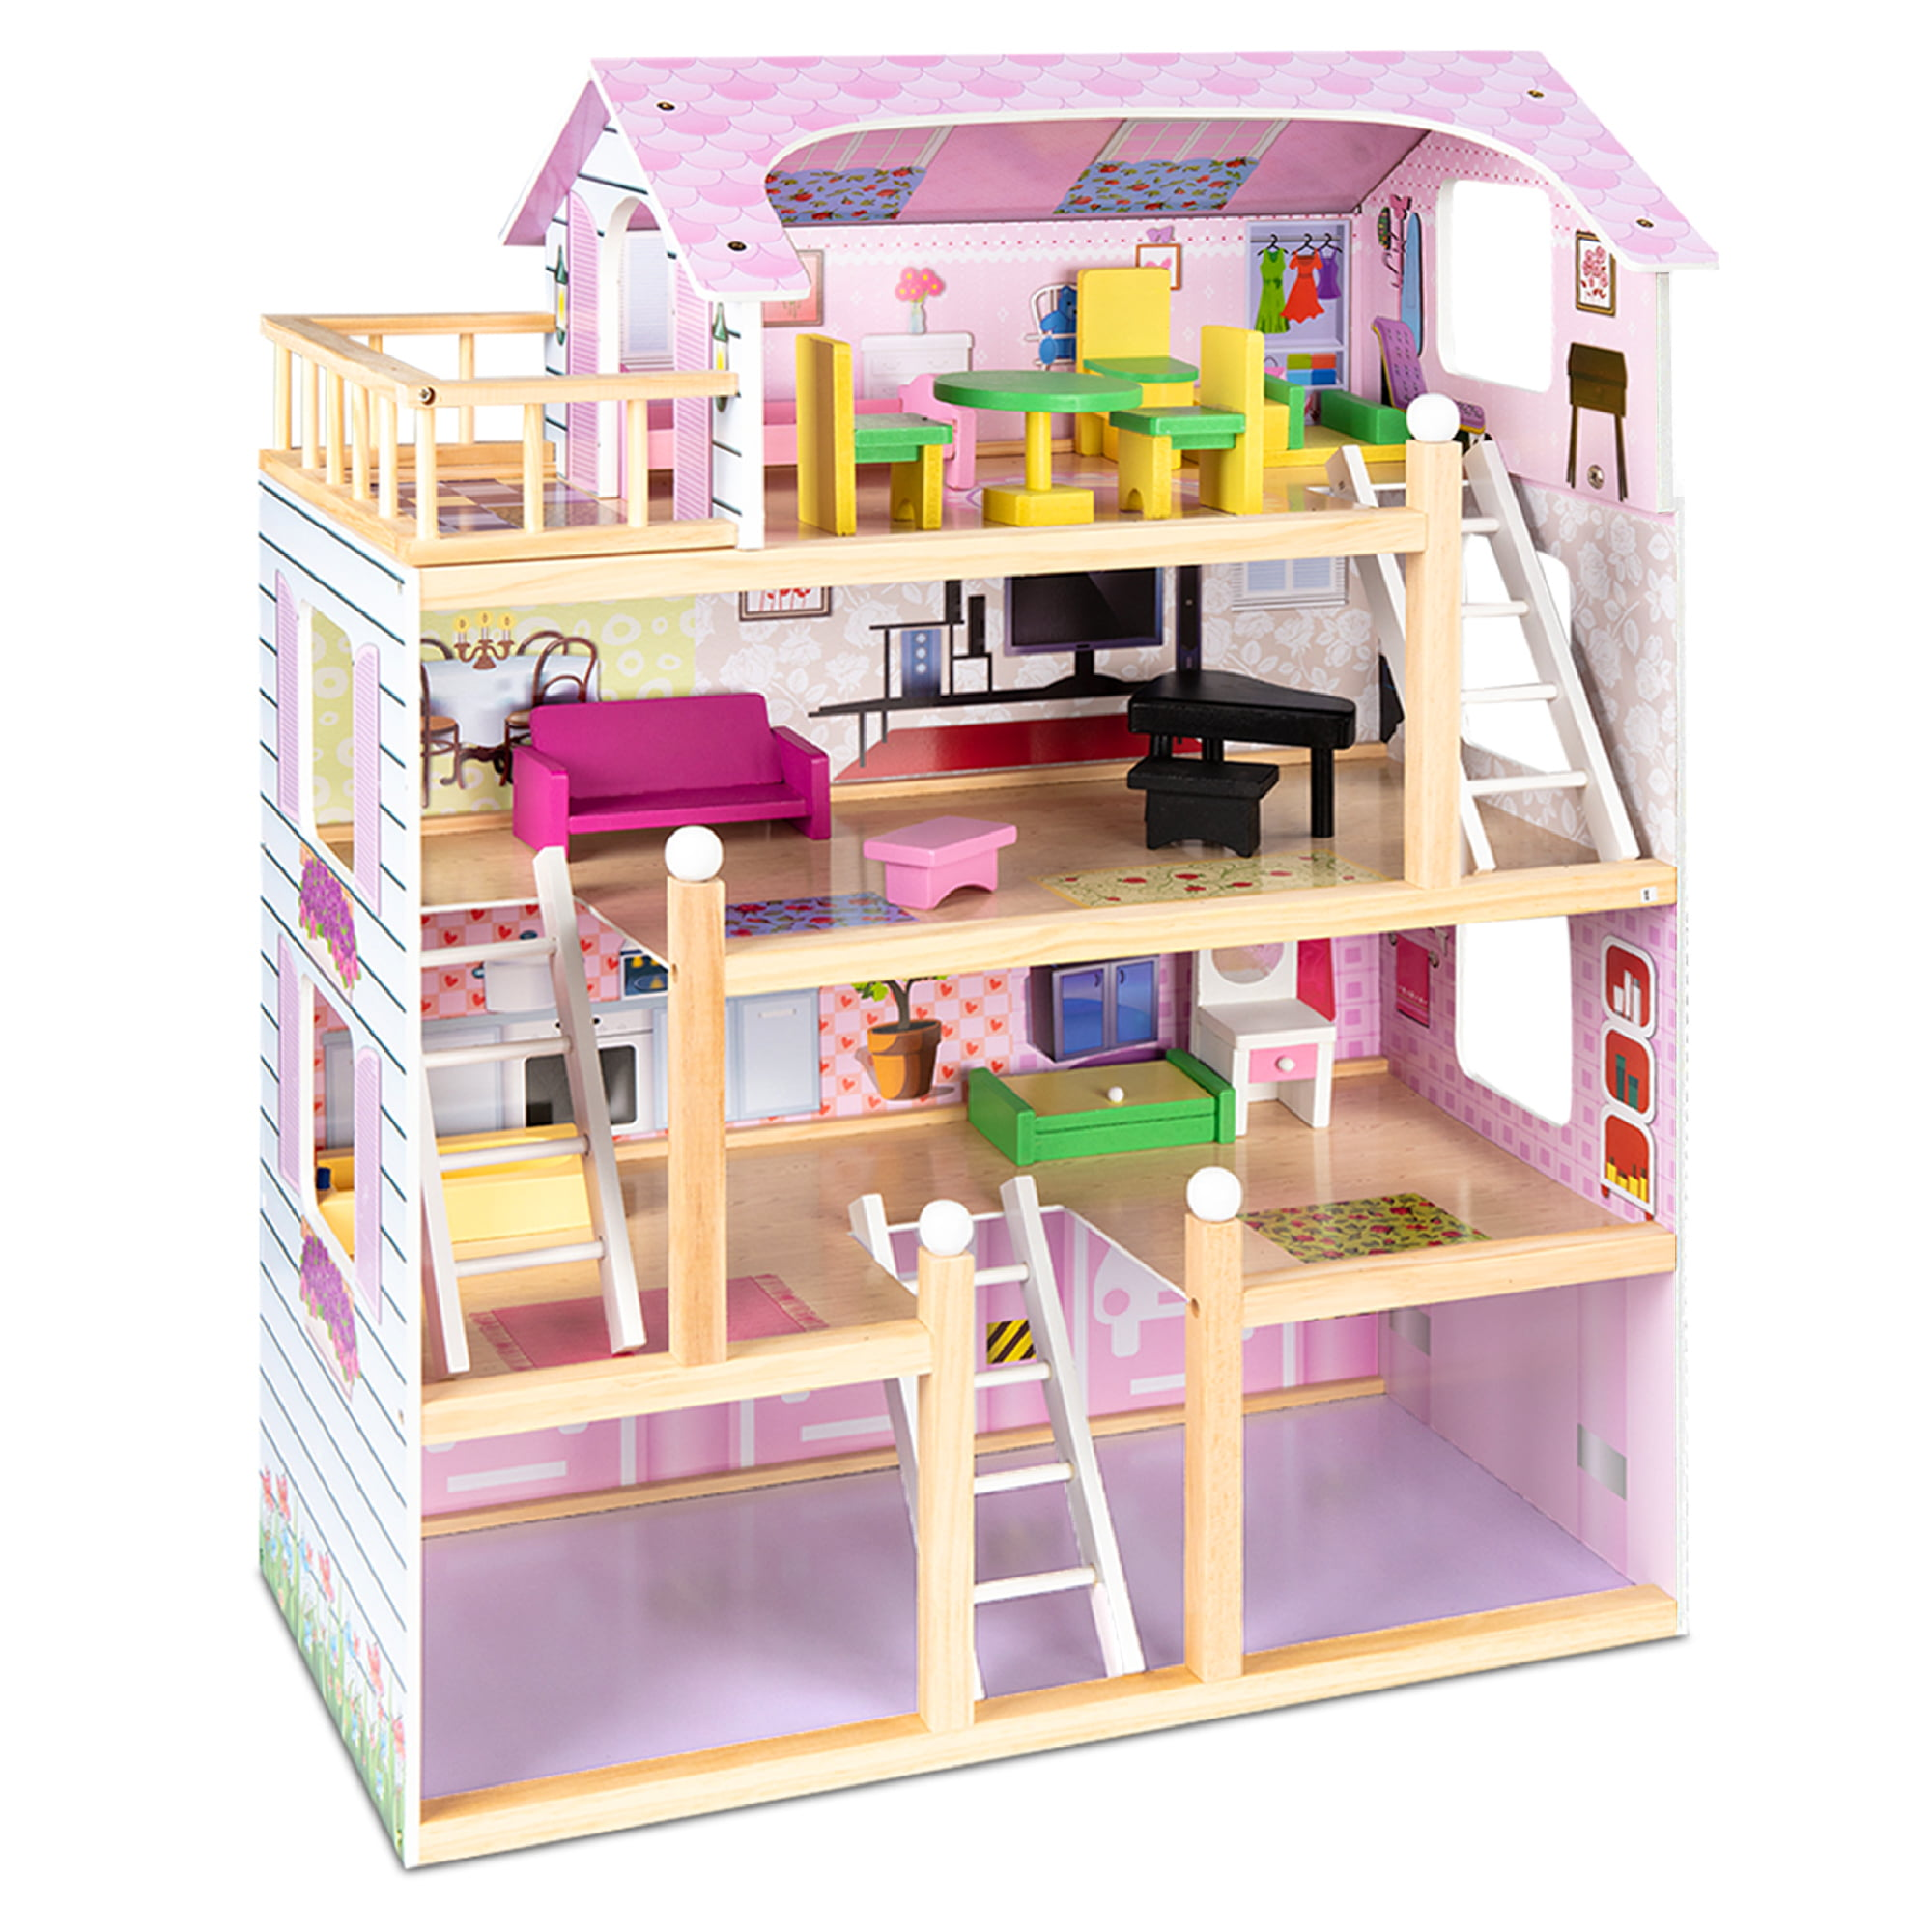 Kids doll accessories bedroom furniture lovely bed dollhouse toy set for doll BS